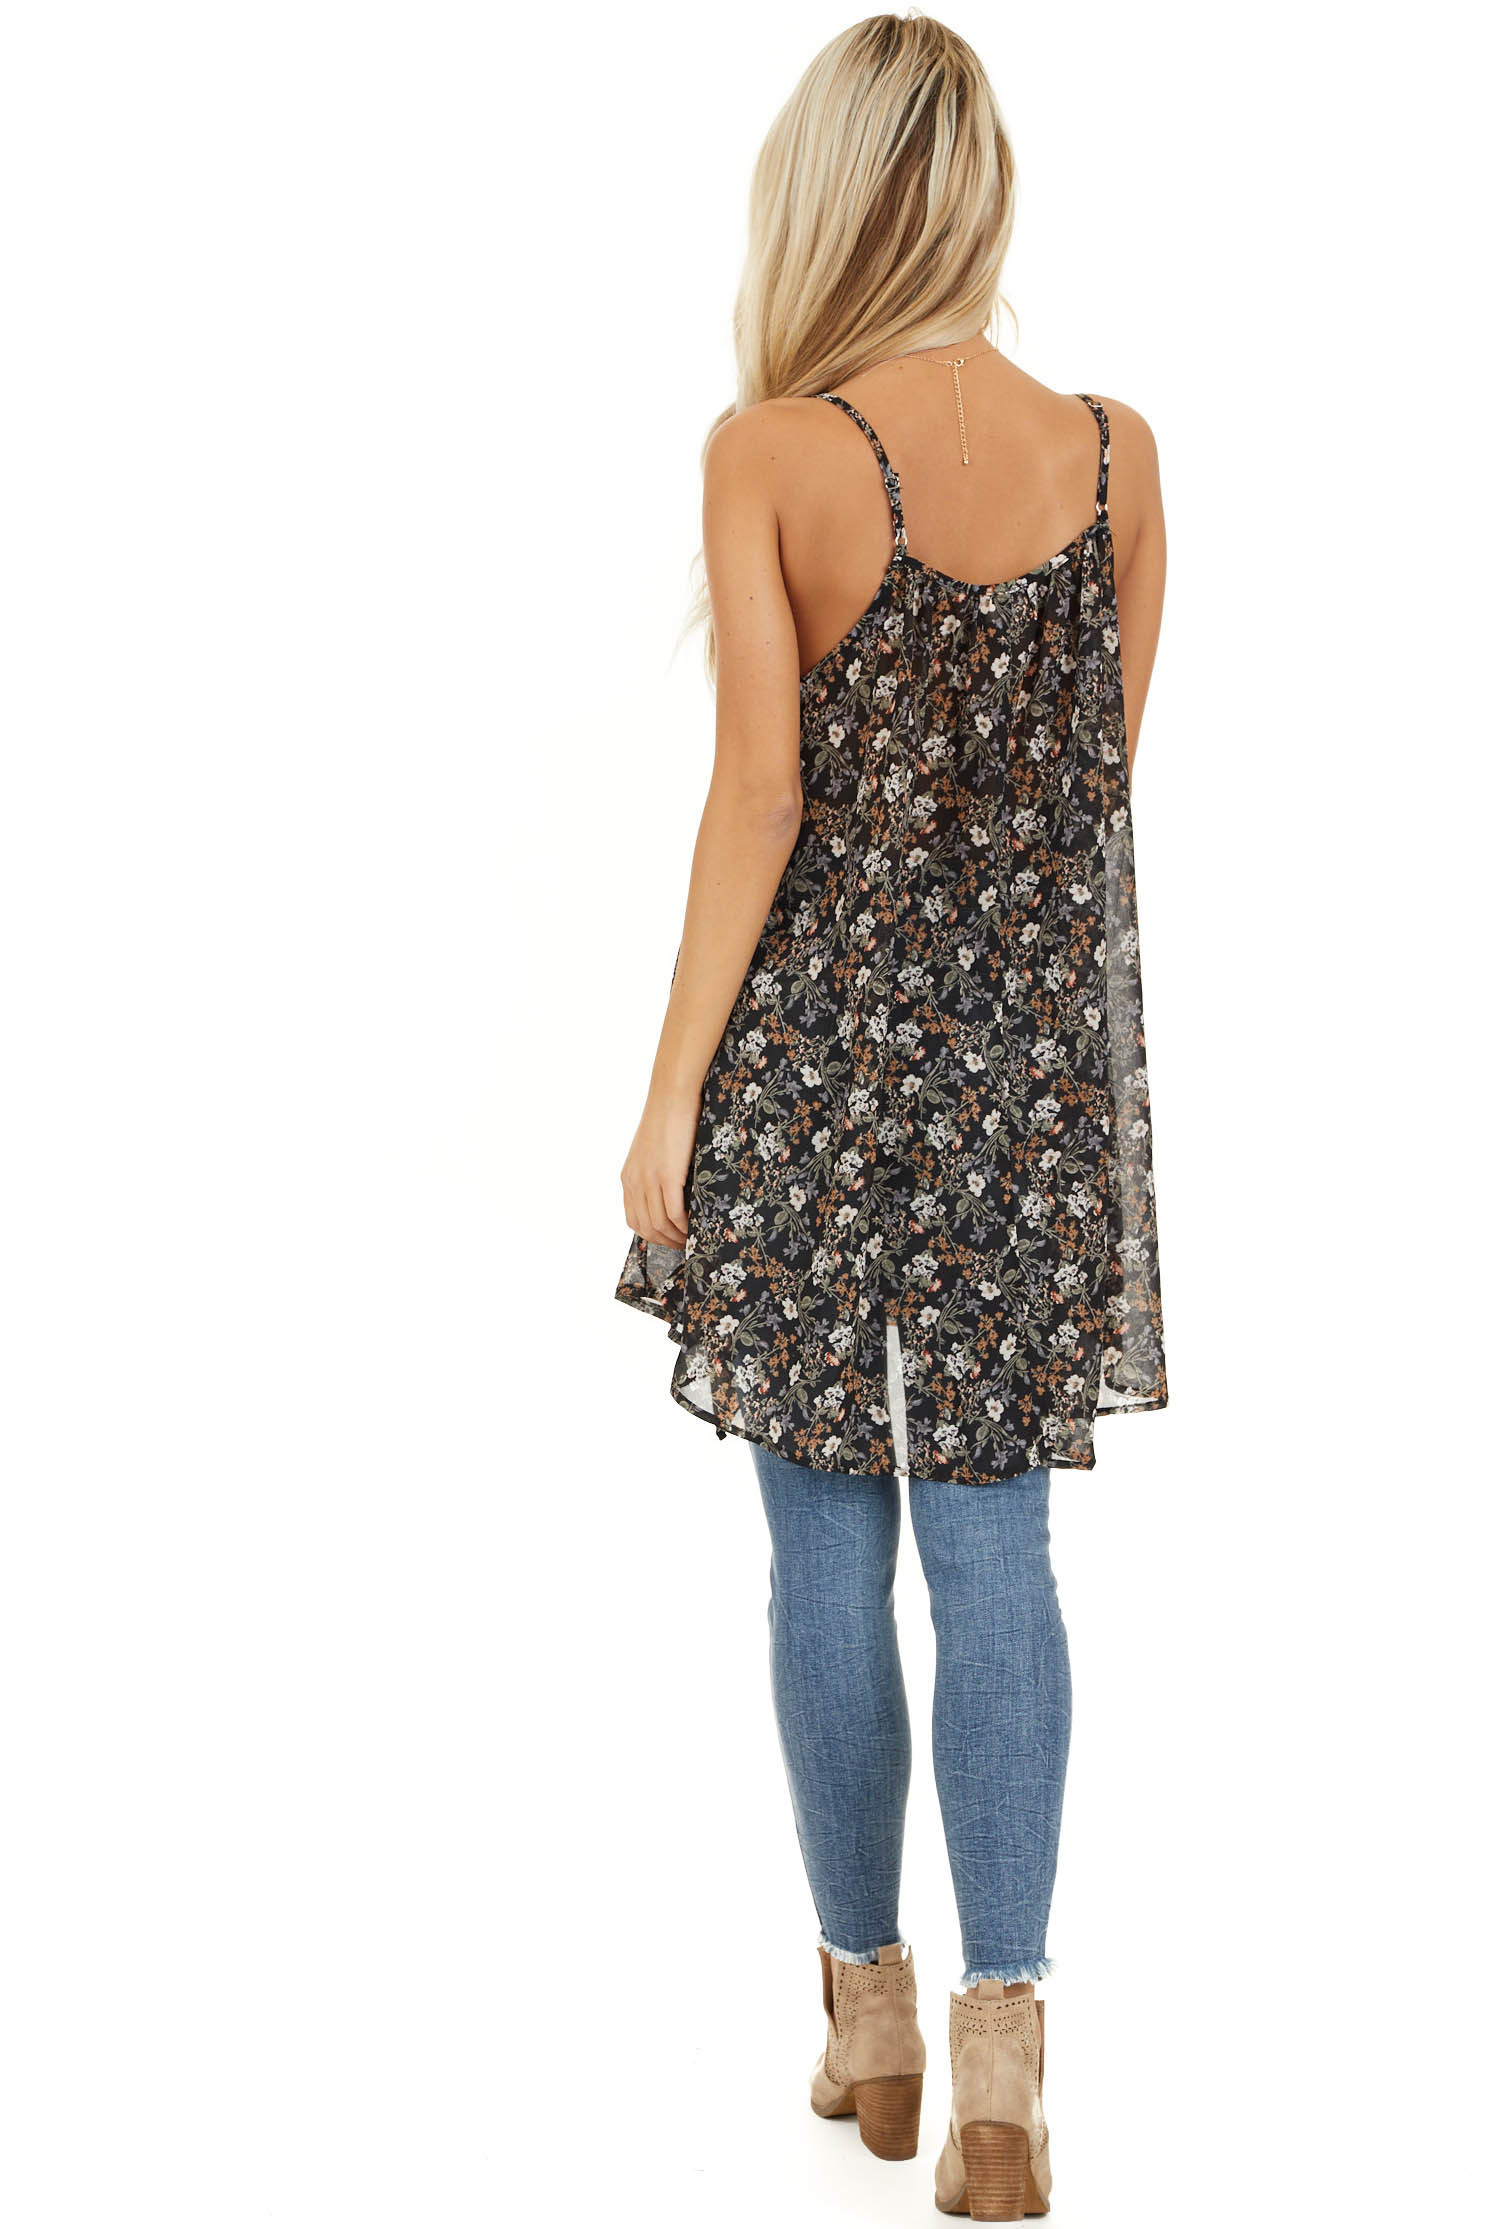 Raven Black Floral Print Cami Tunic Top with Ruffle Detail back full body